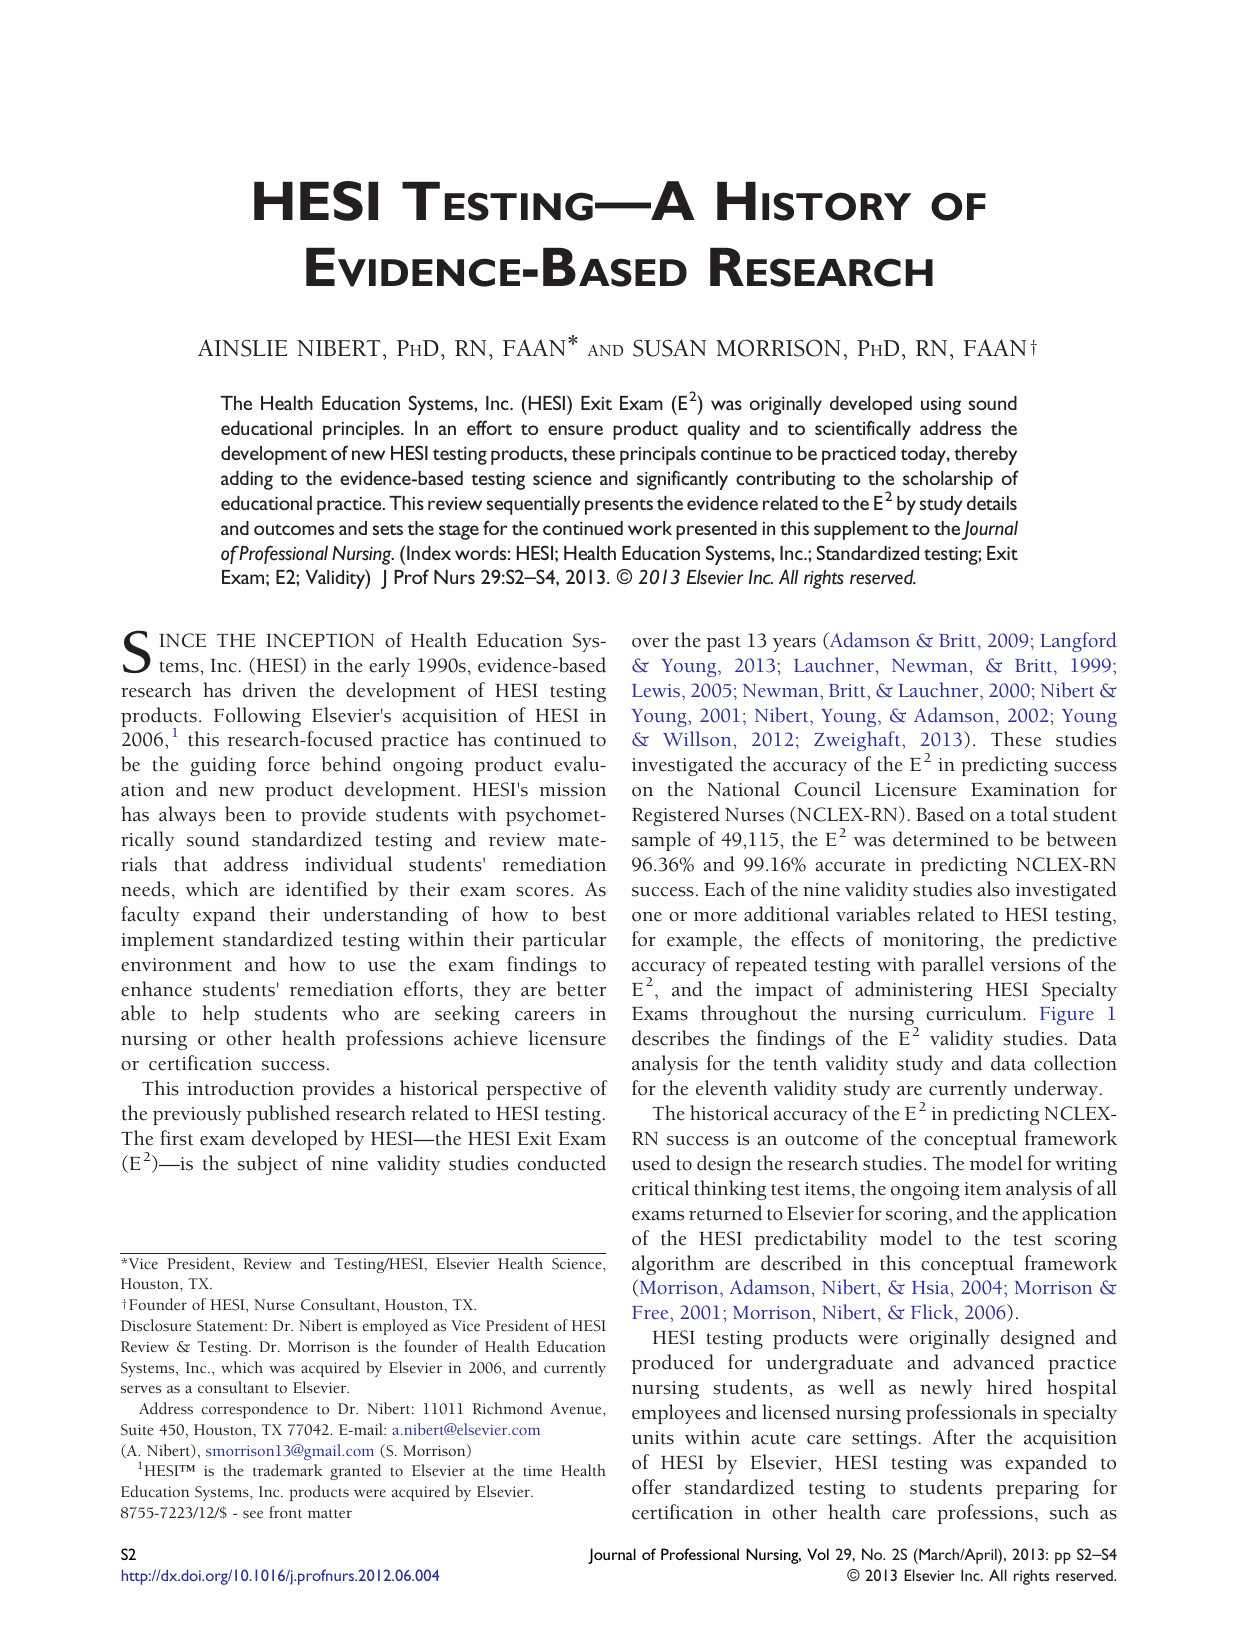 HESI Testing—A History of Evidence